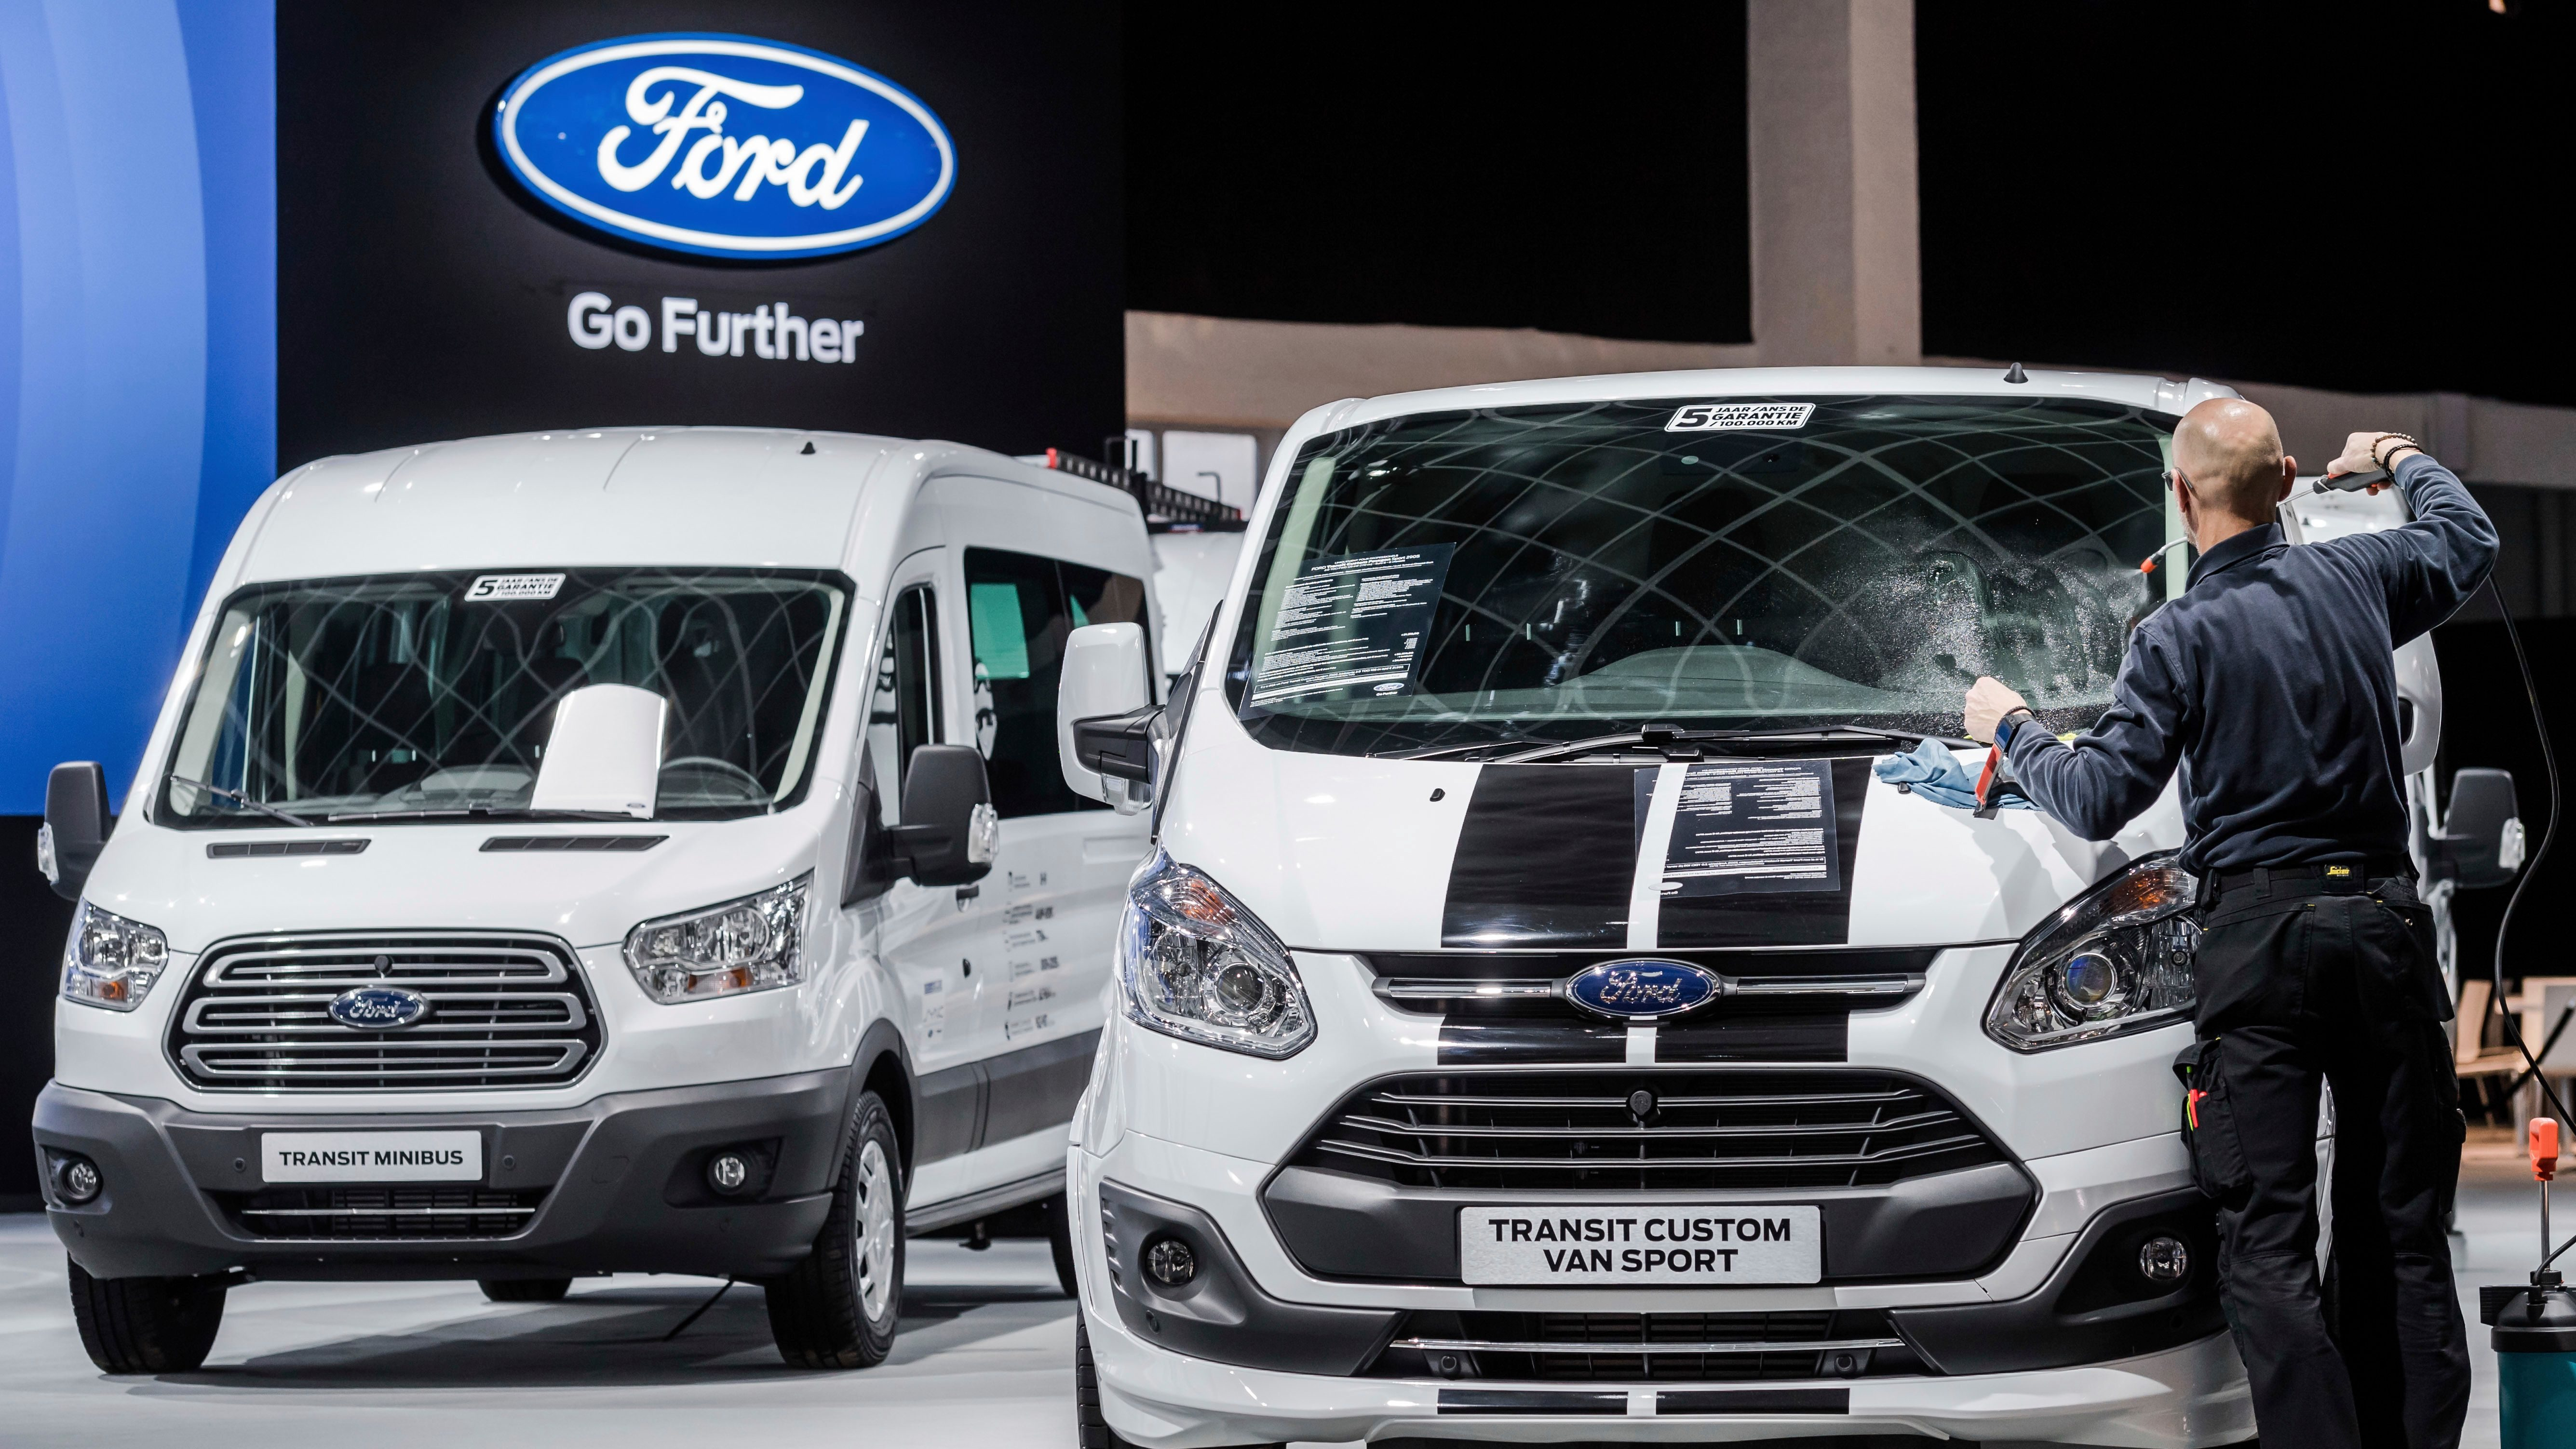 A Ford worker cleans a windowscreen of the Ford Transit Custom Van Sport